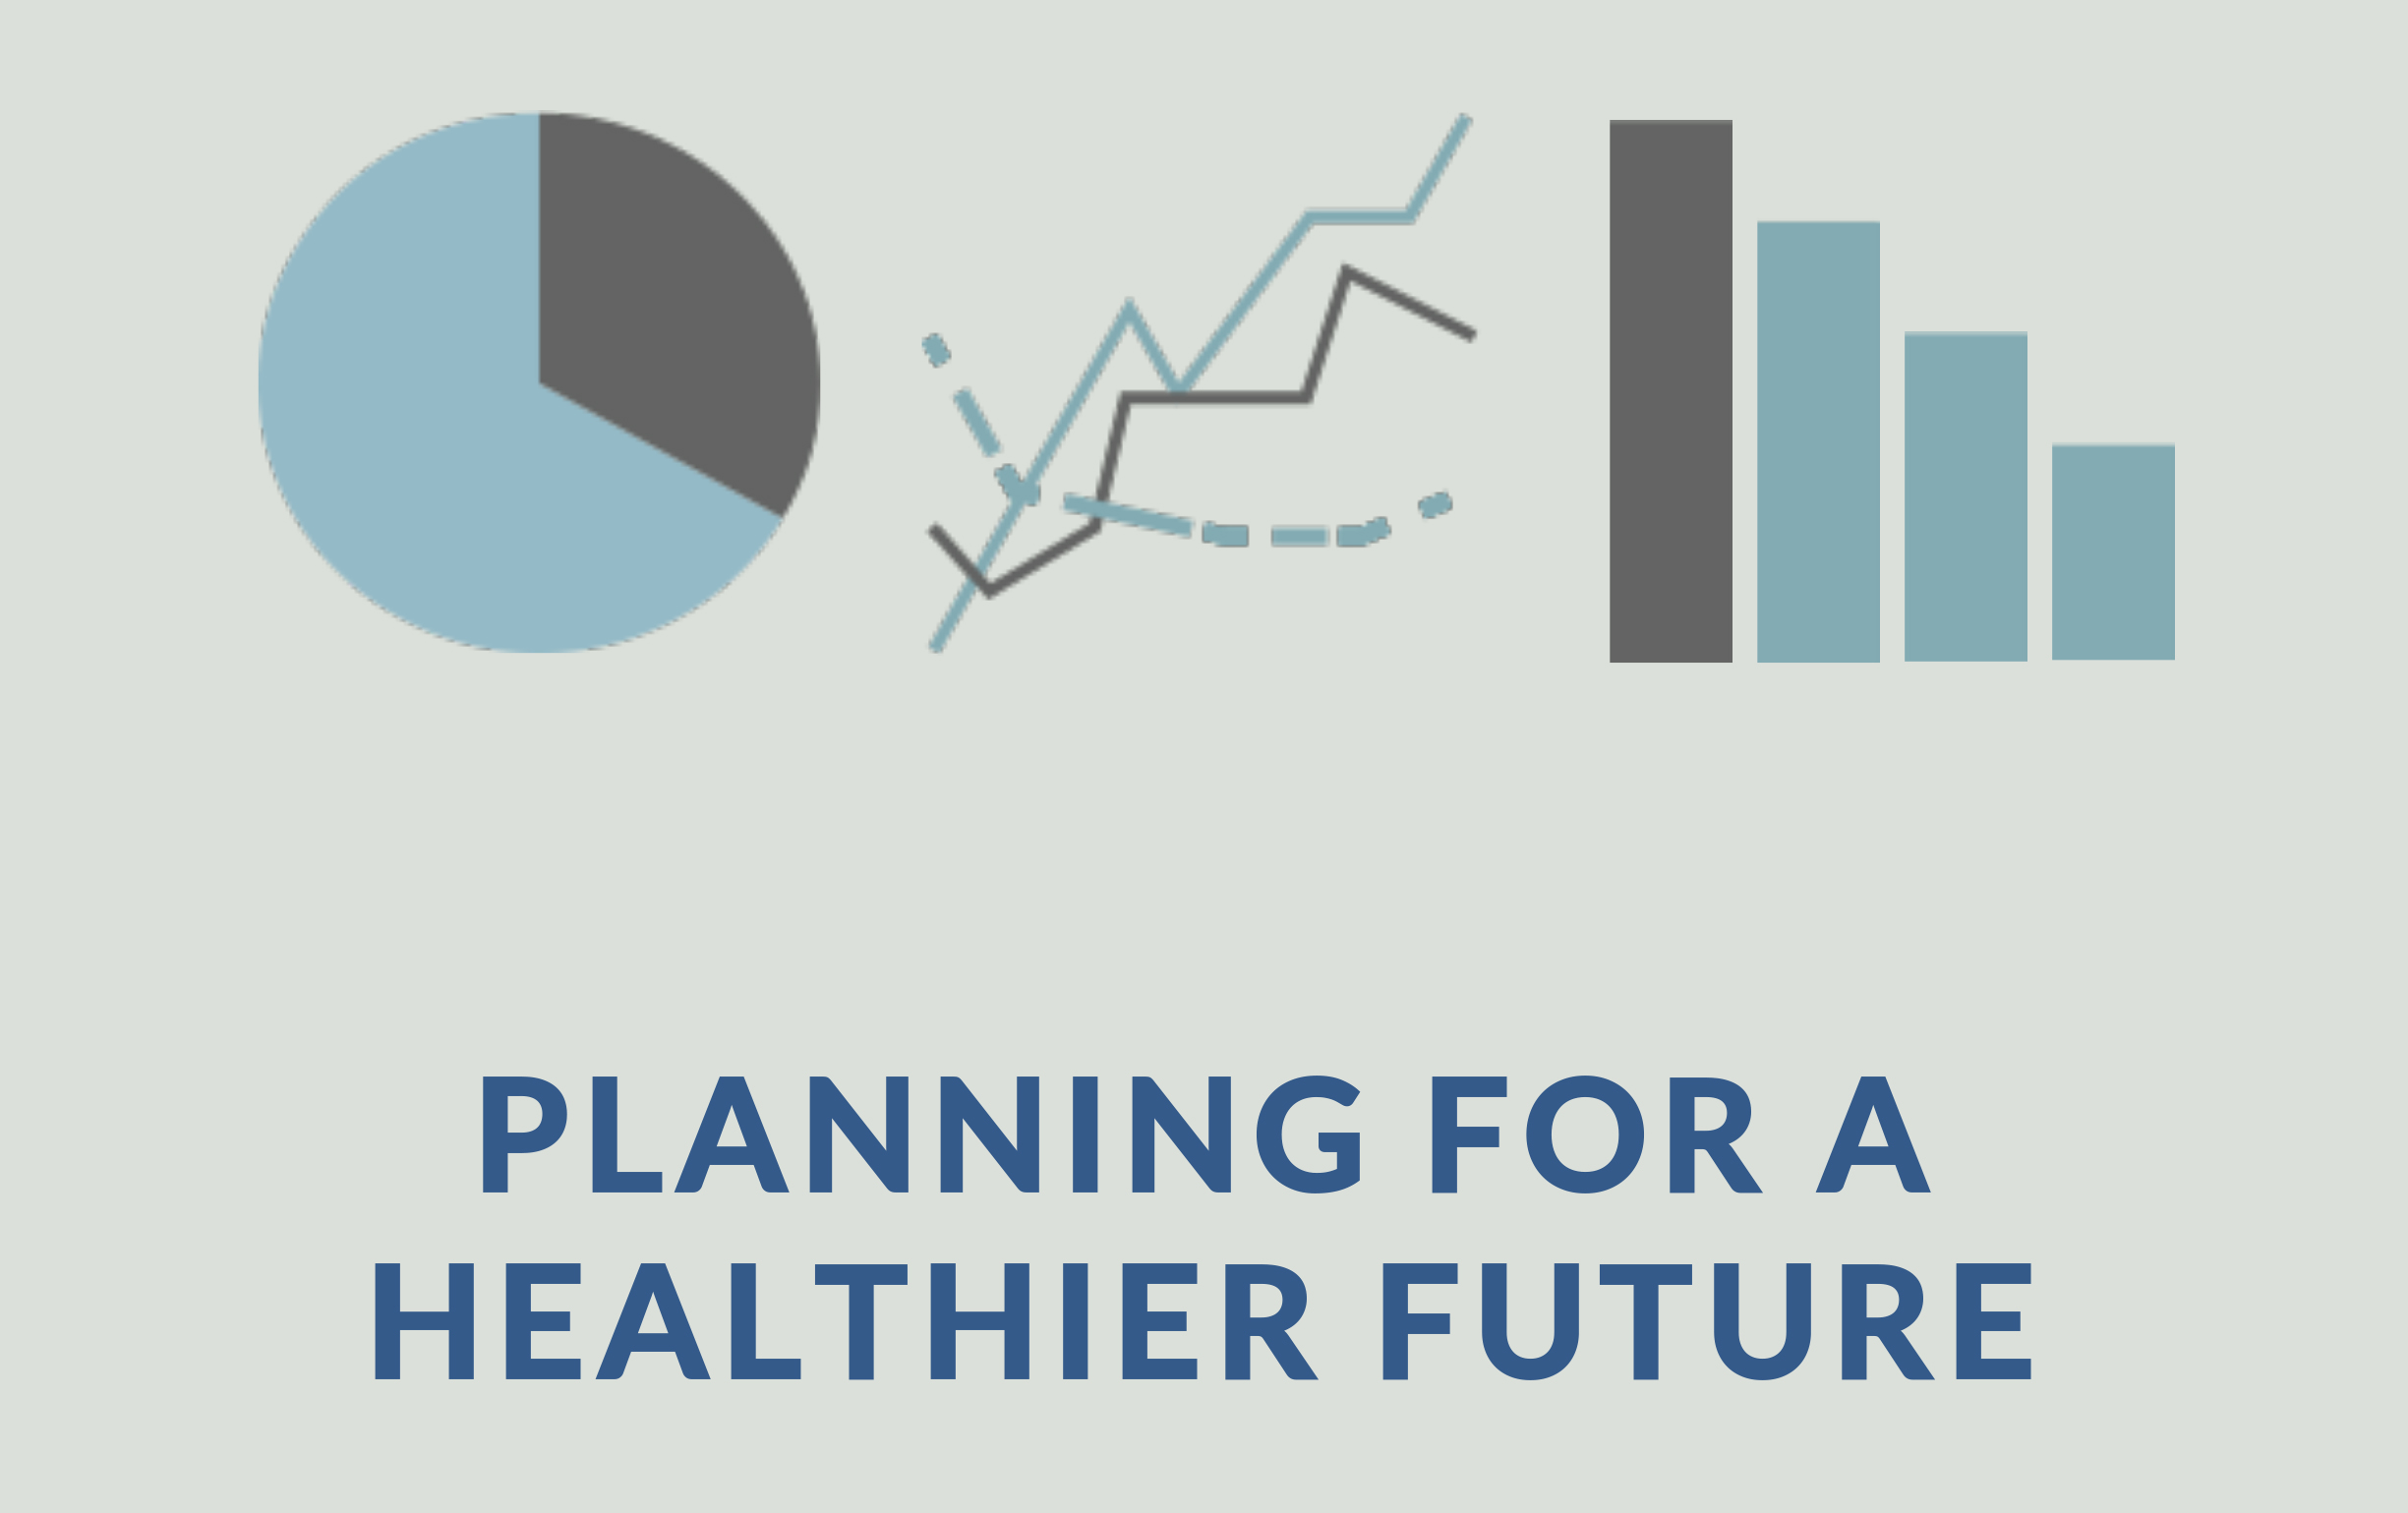 Planning for a Healthier Future